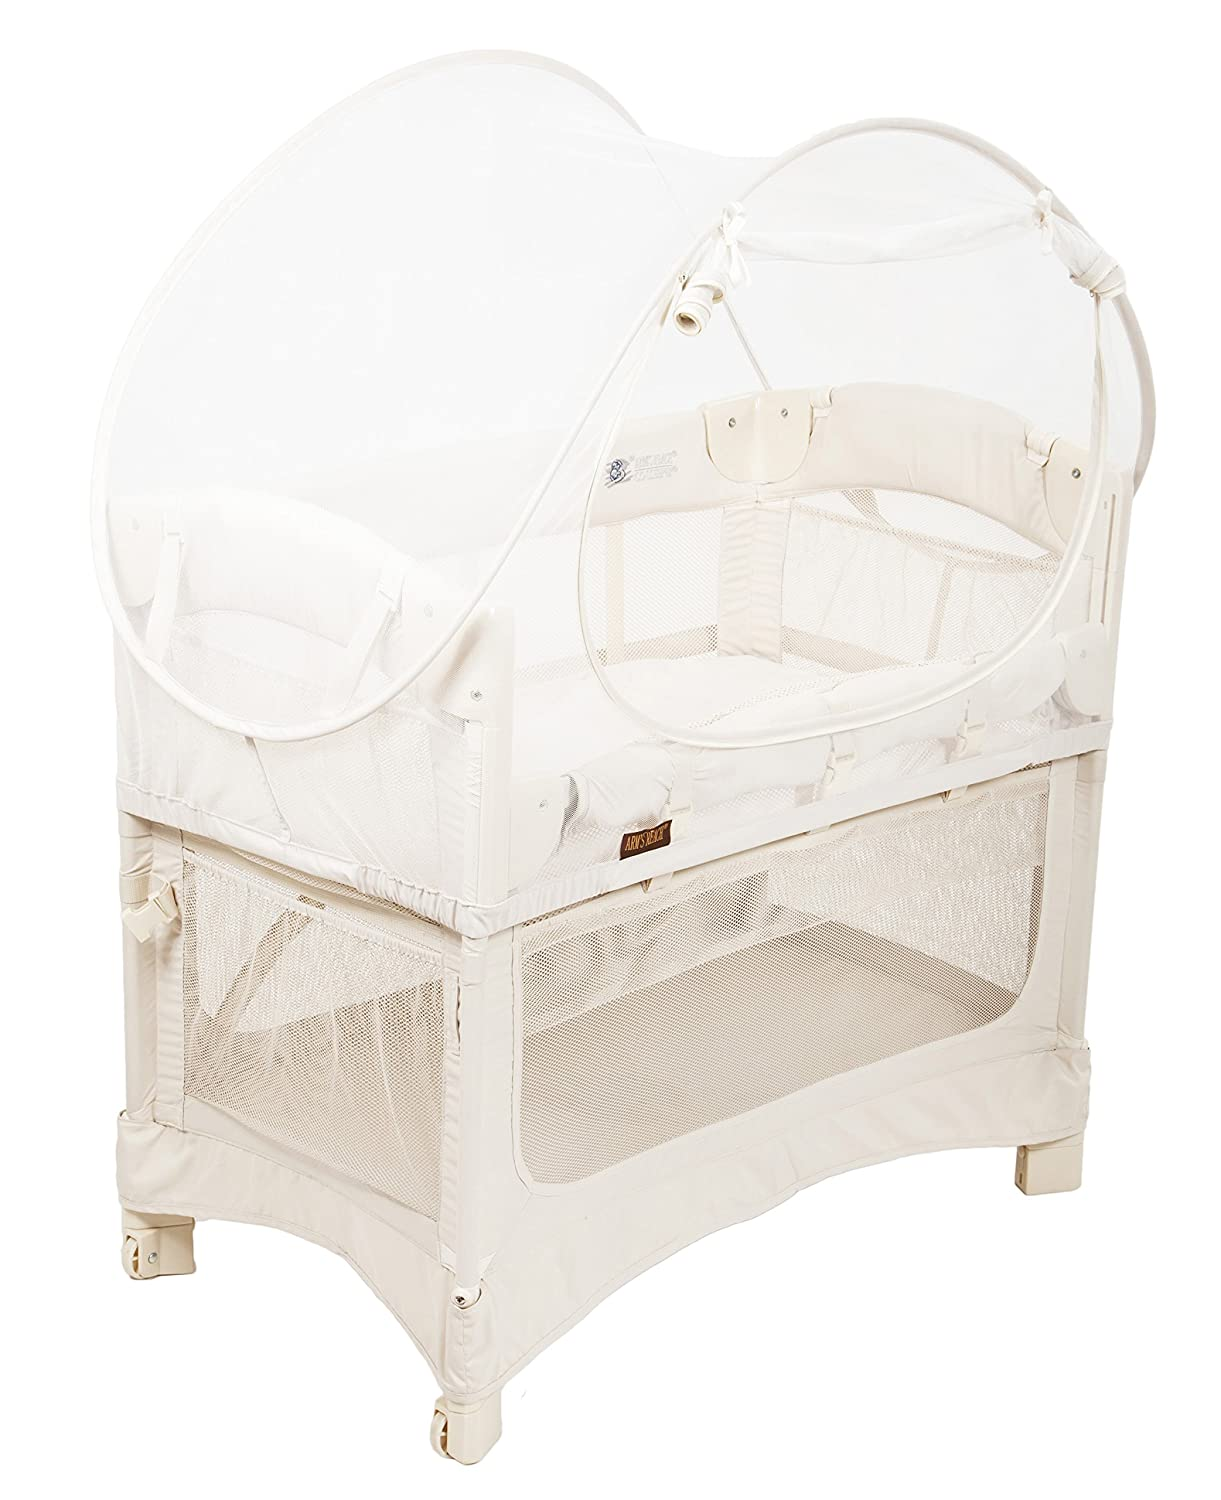 Arm's Reach The Ideal Canopy Inse Count Netting, White ababy 9902-W